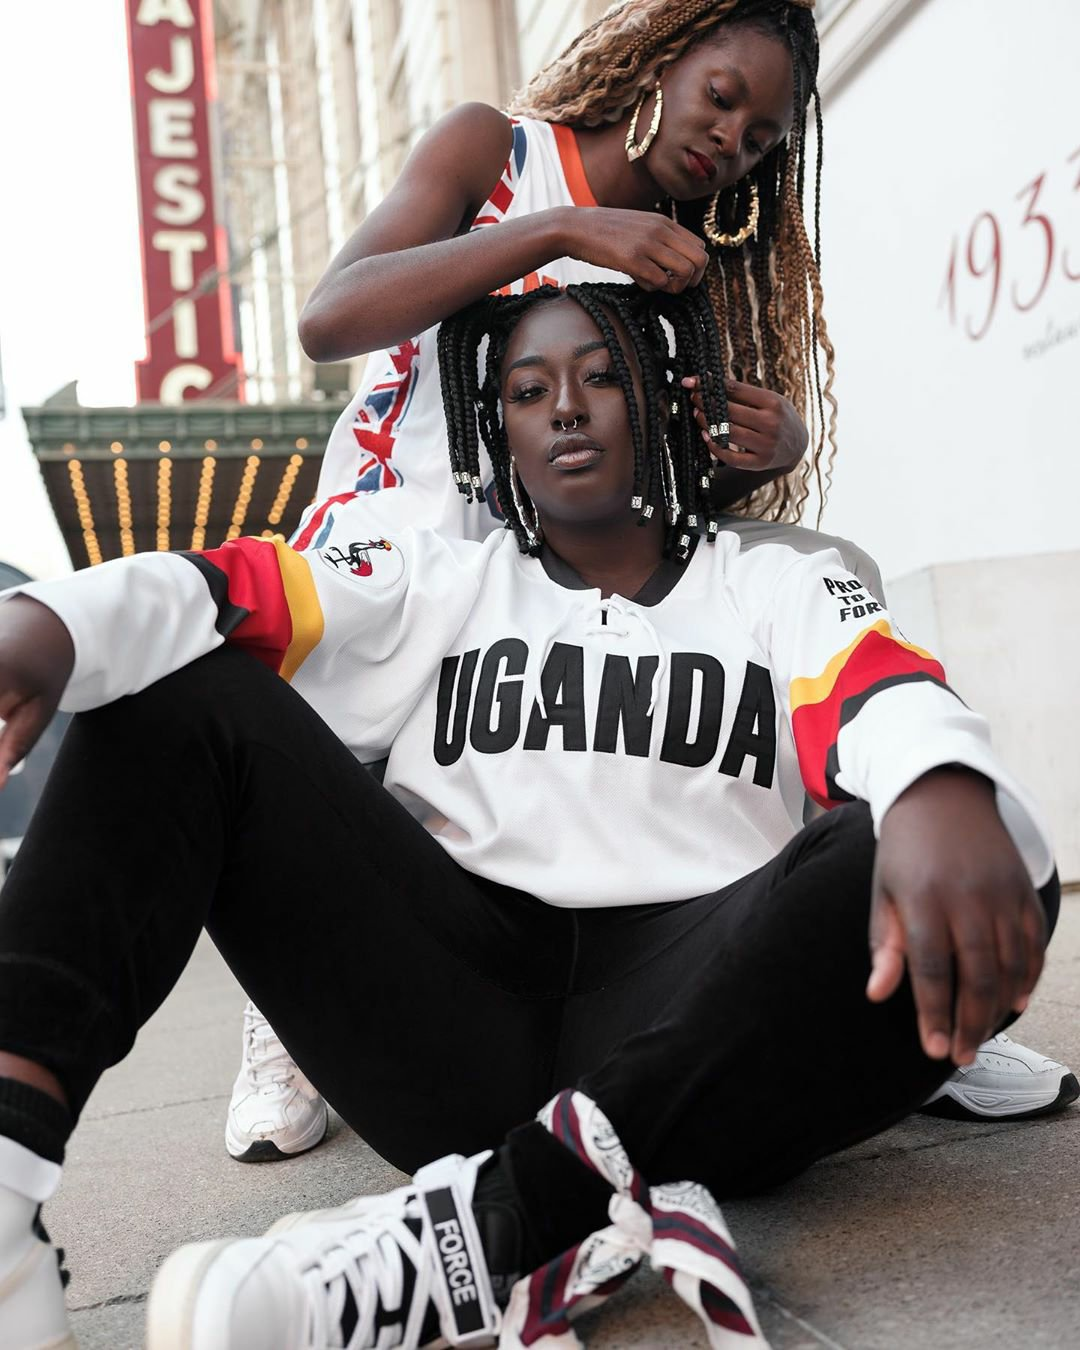 2this vogue approved brand is spotlighting africa with sports jerseys6290461096324185921